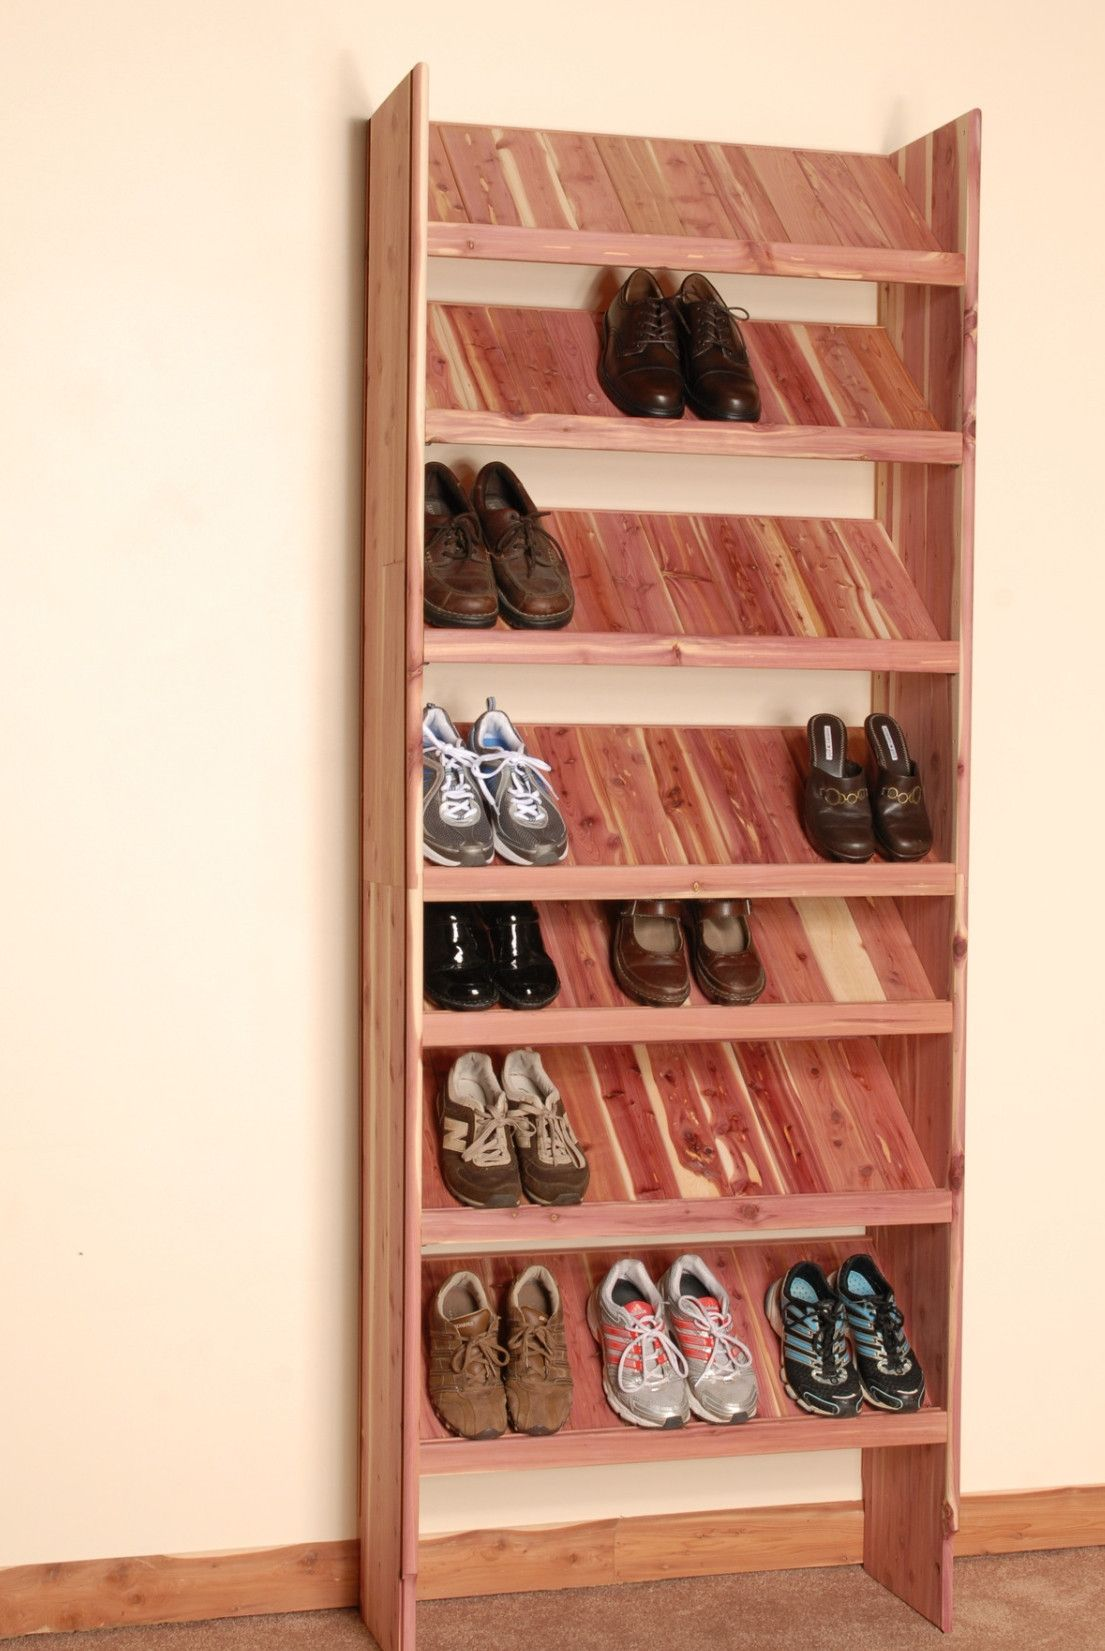 Closet Ideas For Small Spaces: 25 Handy Shoe Storage Ideas For Effective Space Management